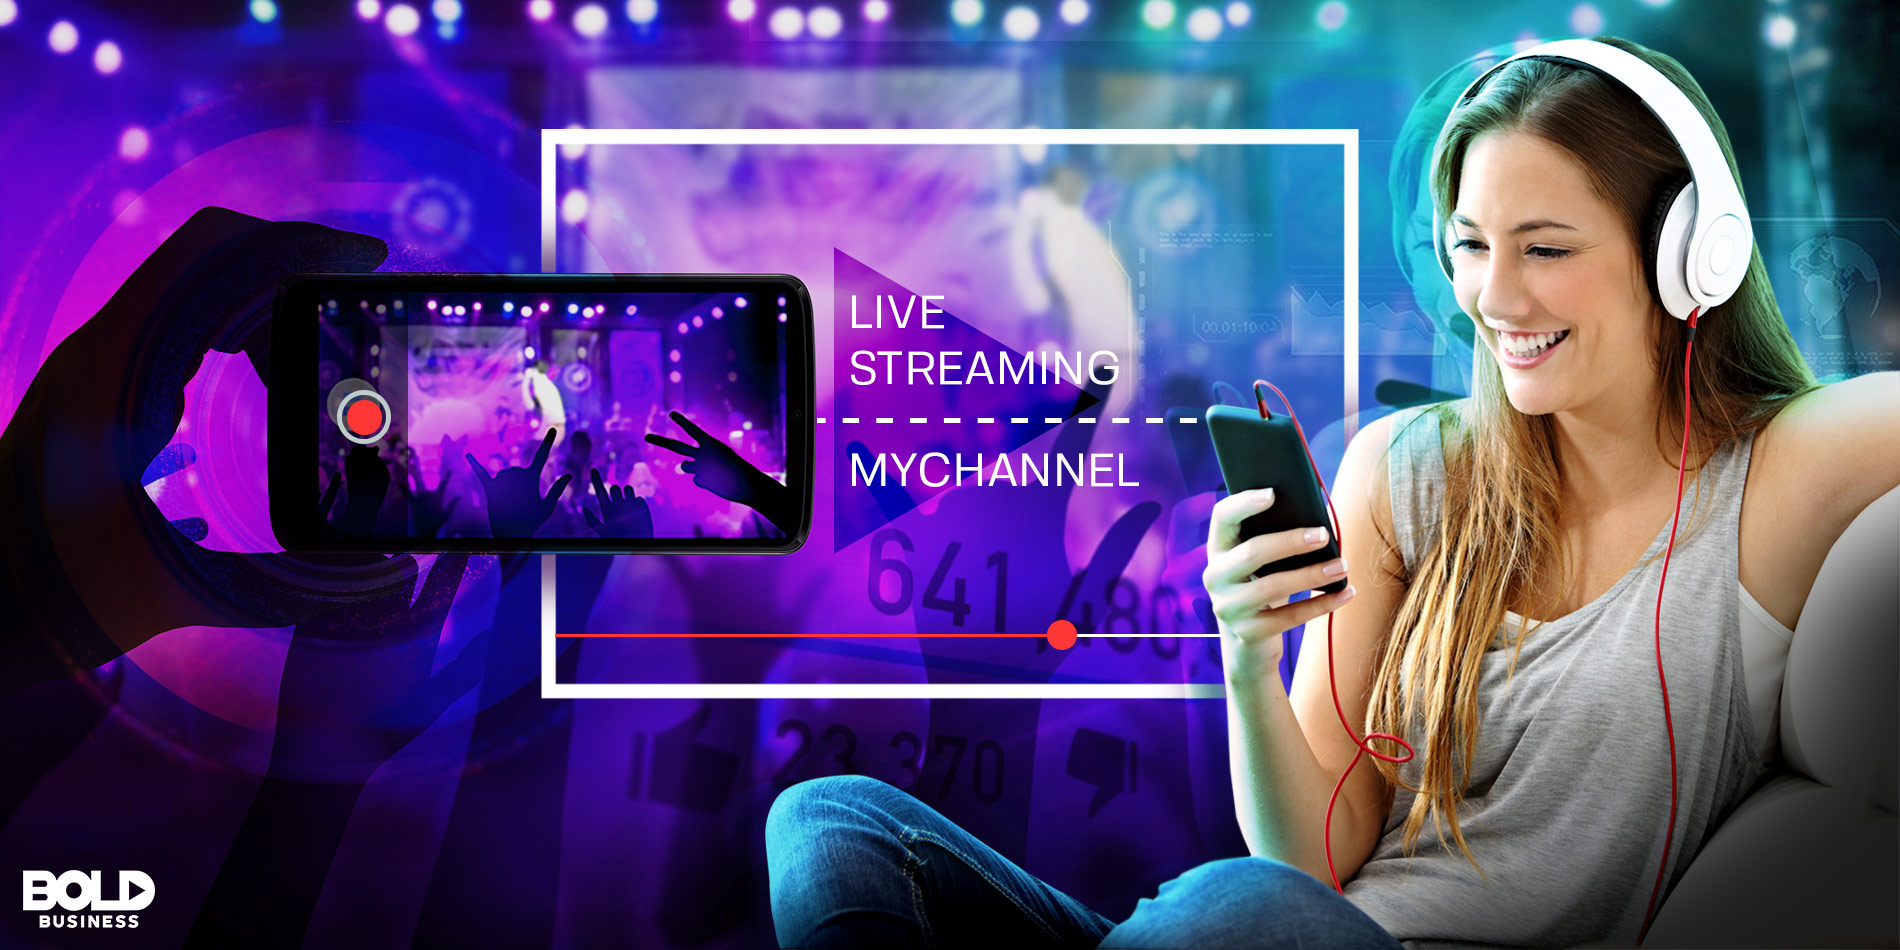 MyChannel is Revolutionizing Live Streaming and Audience Engagement